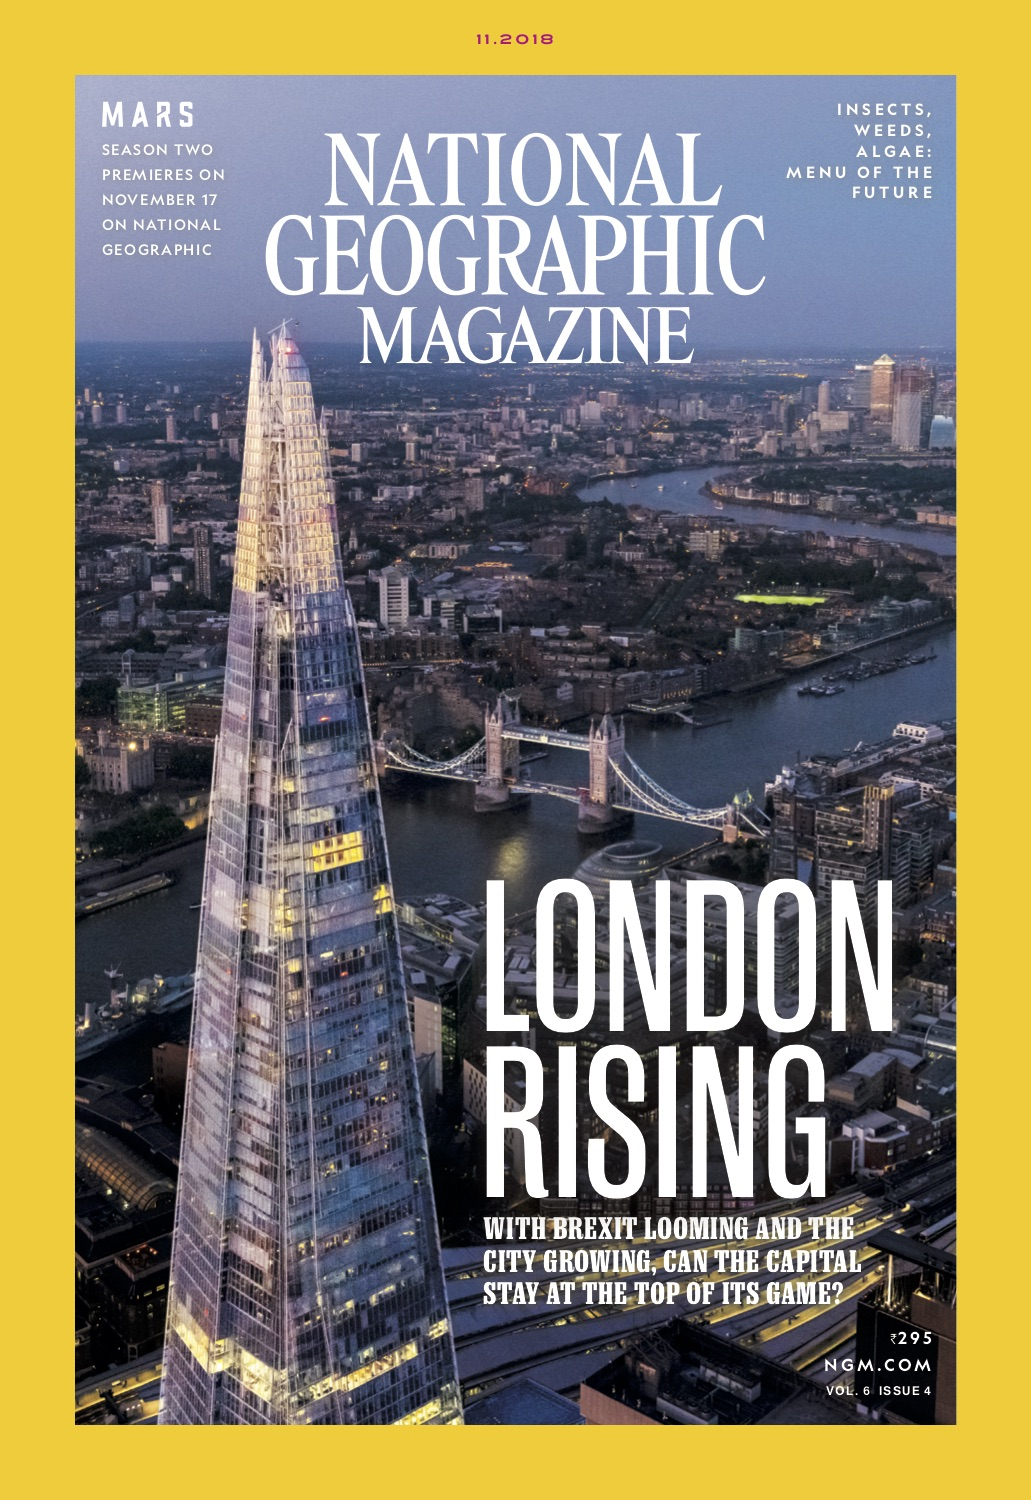 NATIONAL GEOGRAPHIC MAGAZINE - LONDON RISING   Three decades of growth reinvented the urban landscape in London—and transformed it into the preeminent global city. But amid growing pains and with Brexit looming, can it stay on top?